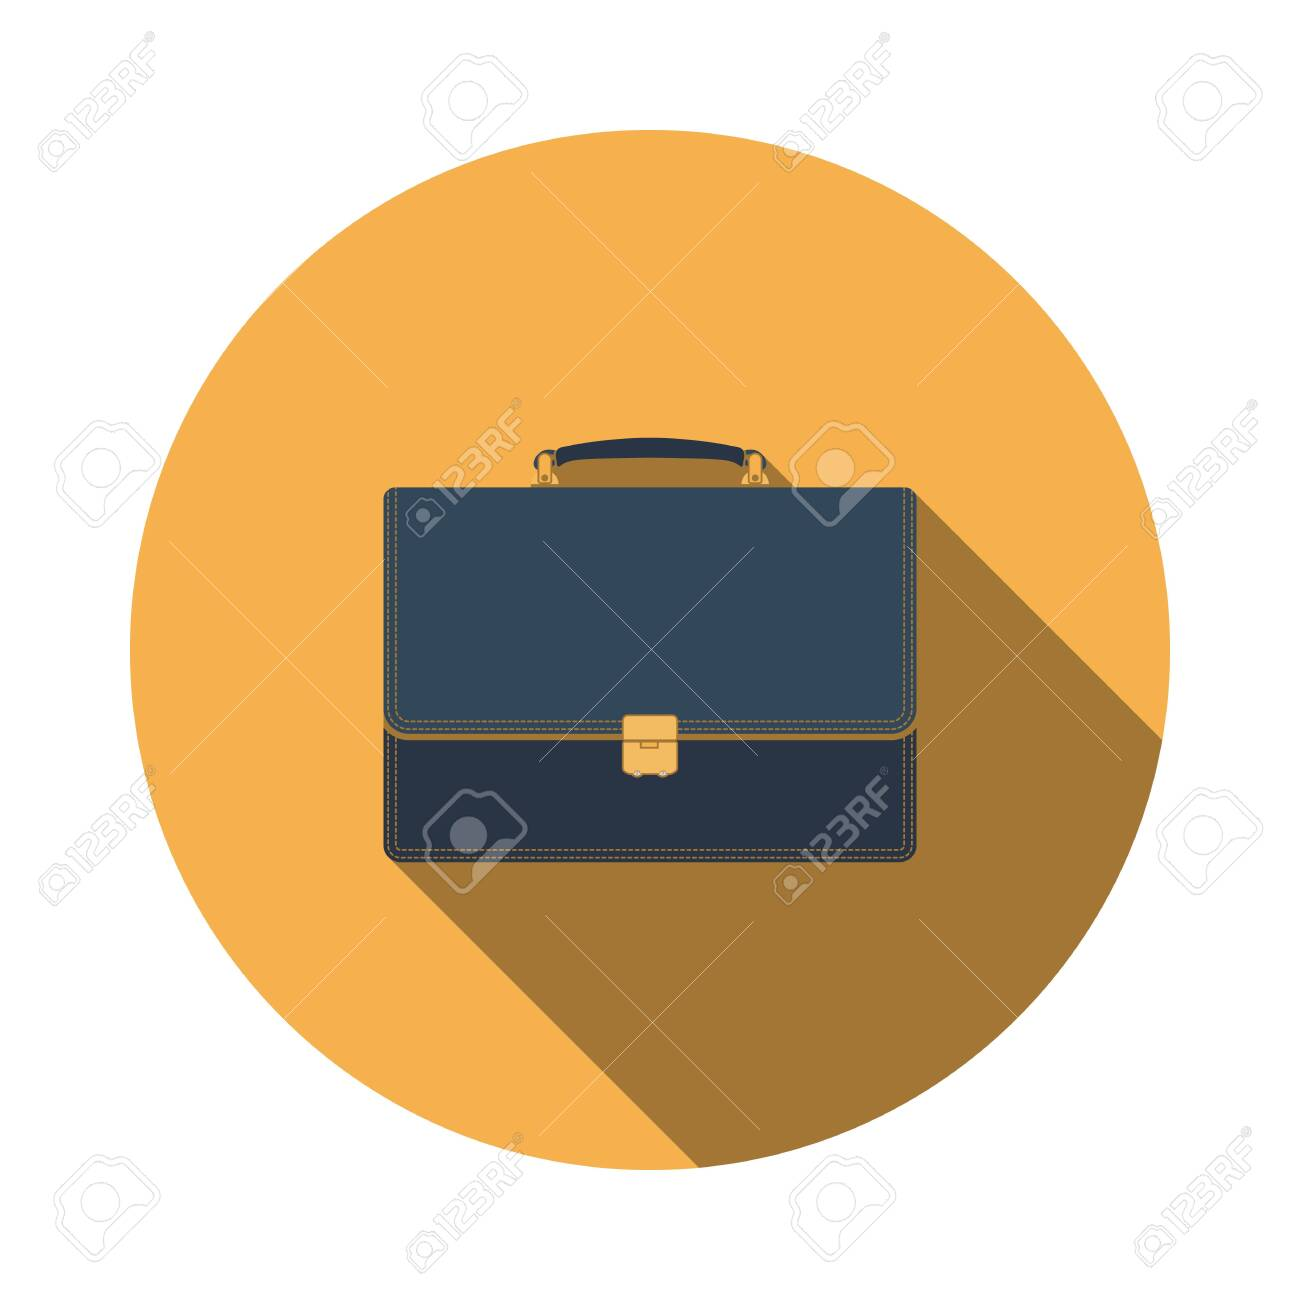 Suitcase icon. Flat Design Circle With Long Shadow. Vector Illustration. - 123613481